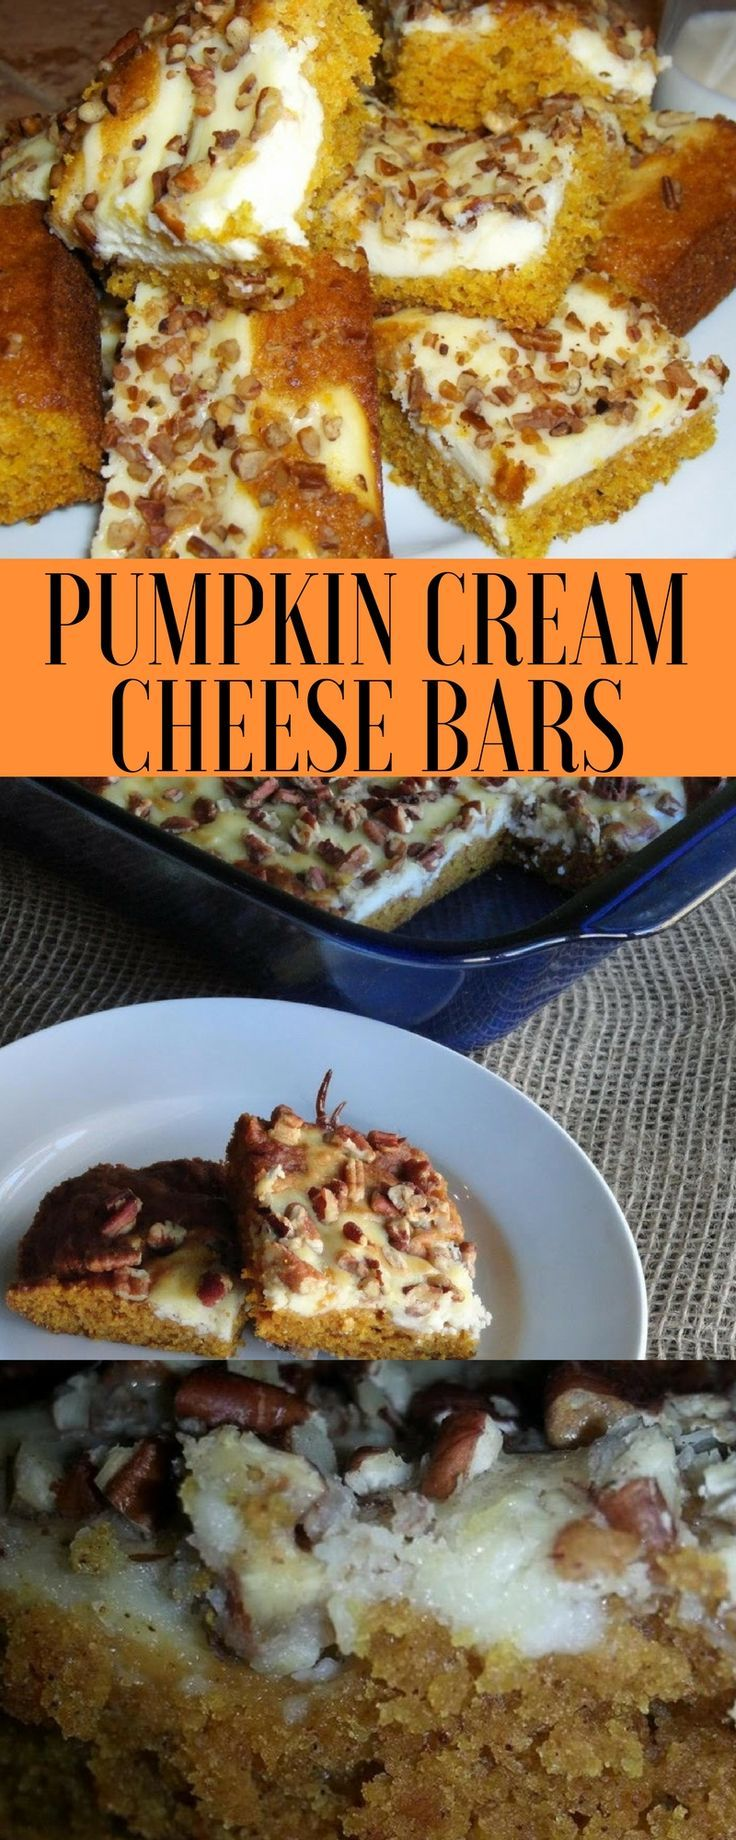 Pumpkin cream cheese bars recipe is ready in just 35 minutes! Easy fall dessert recipe all pumpkin lovers will drool over!